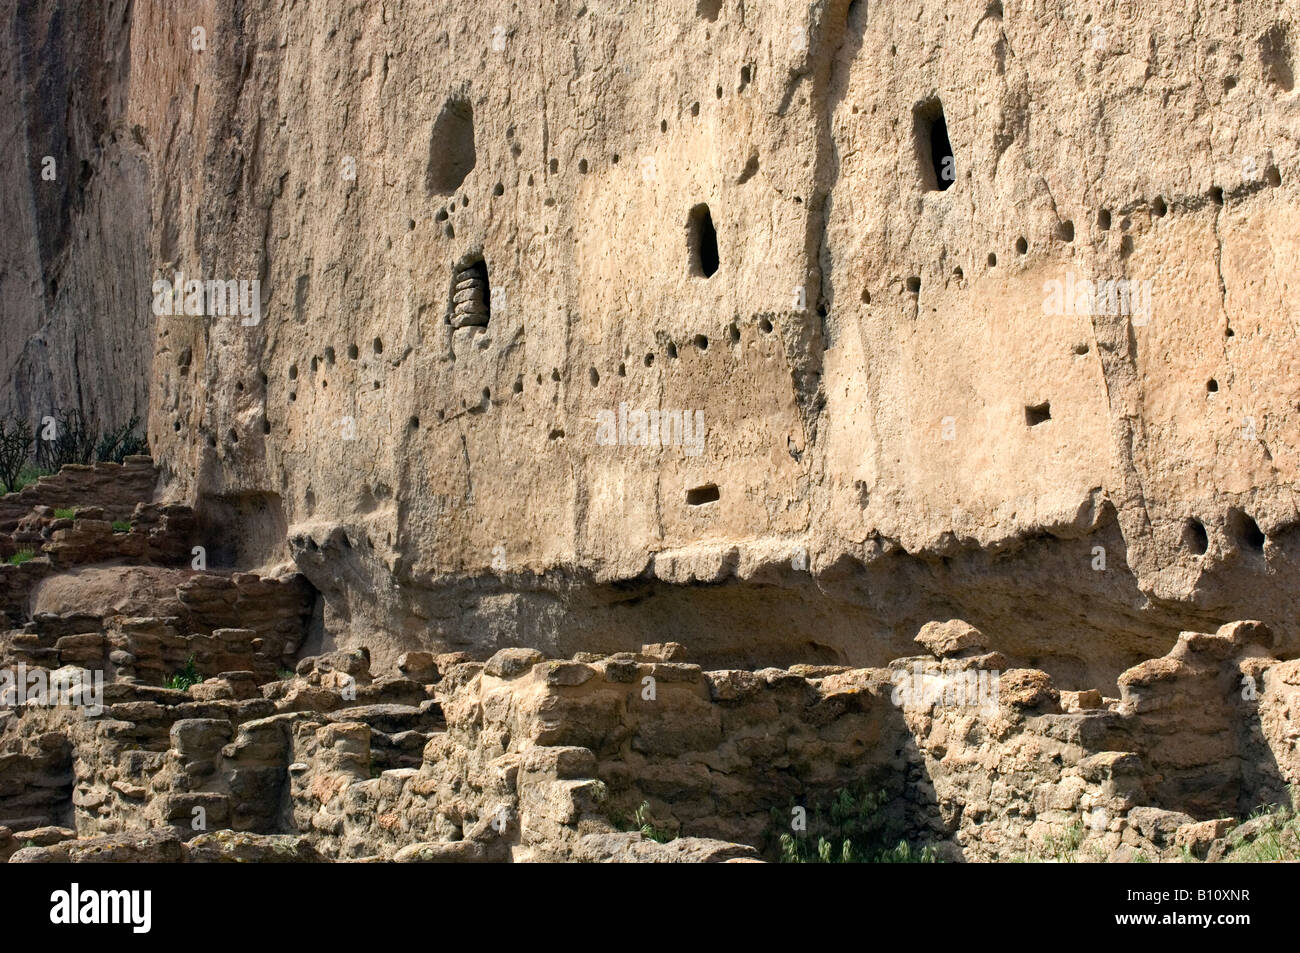 Ancestral Pueblo People Anasazi Long House, New Mexico - Stock Image